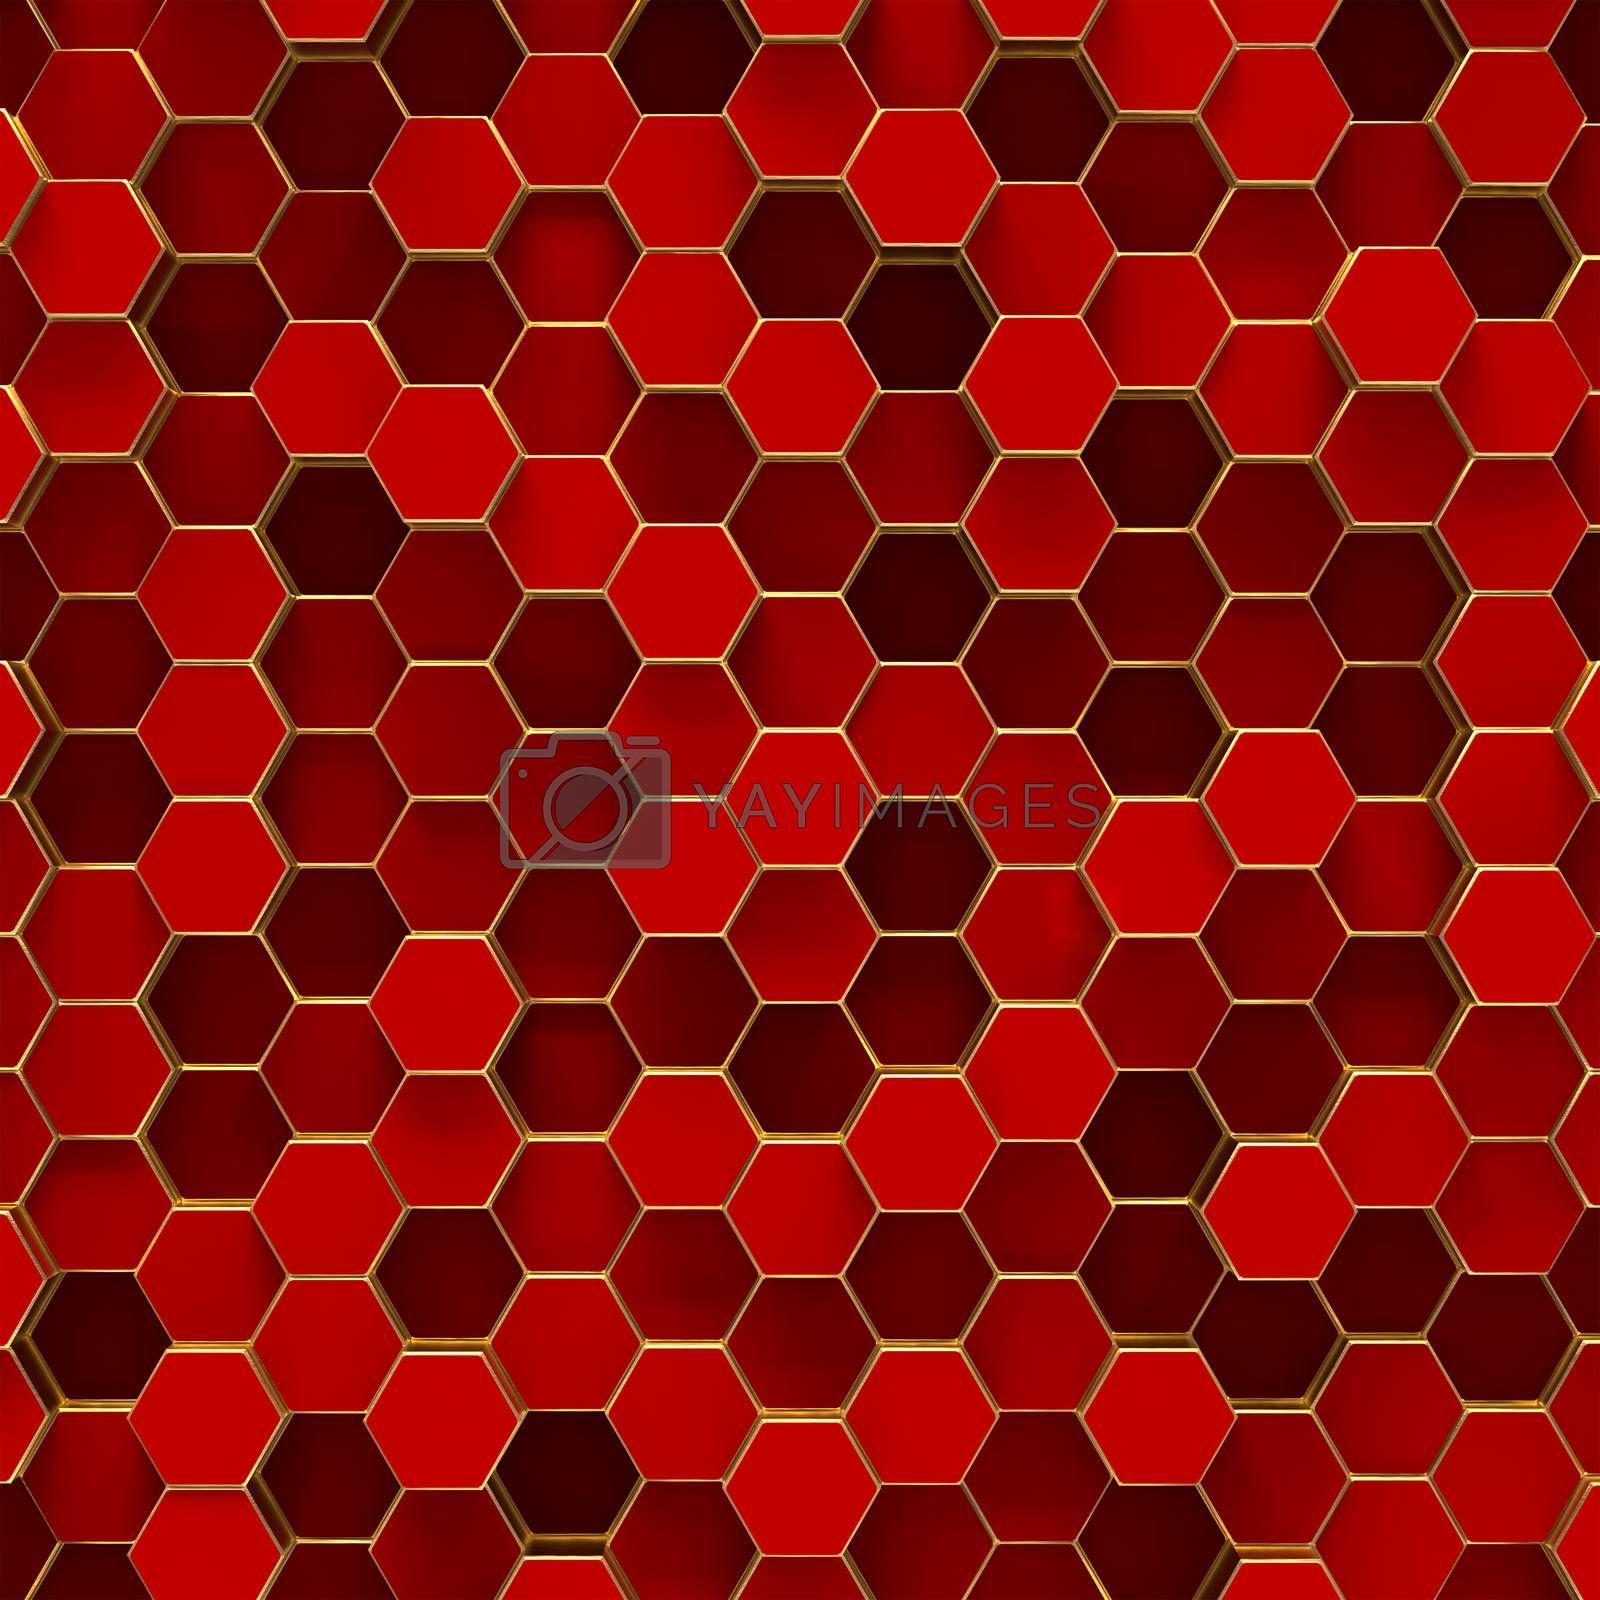 Abstract minimalistic background with red hexagons by merzavka